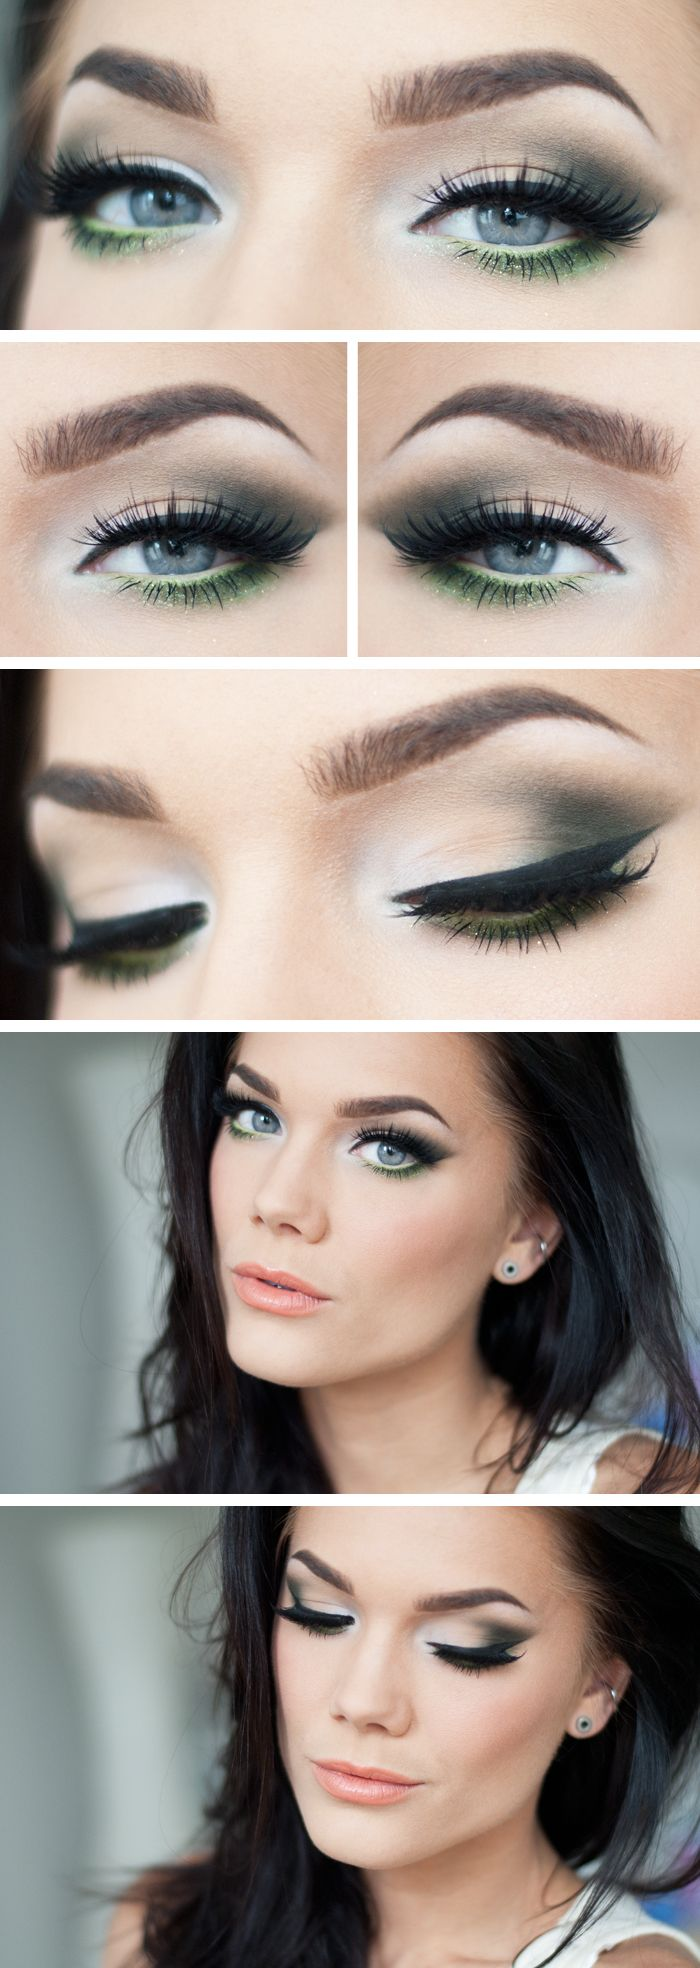 "Today's Look : ""Green Glitter"" -Linda Hallberg ( a gorgeous eye done in a perfectly subtle smokey eye with a beautiful mossy green ) 05/08/13"